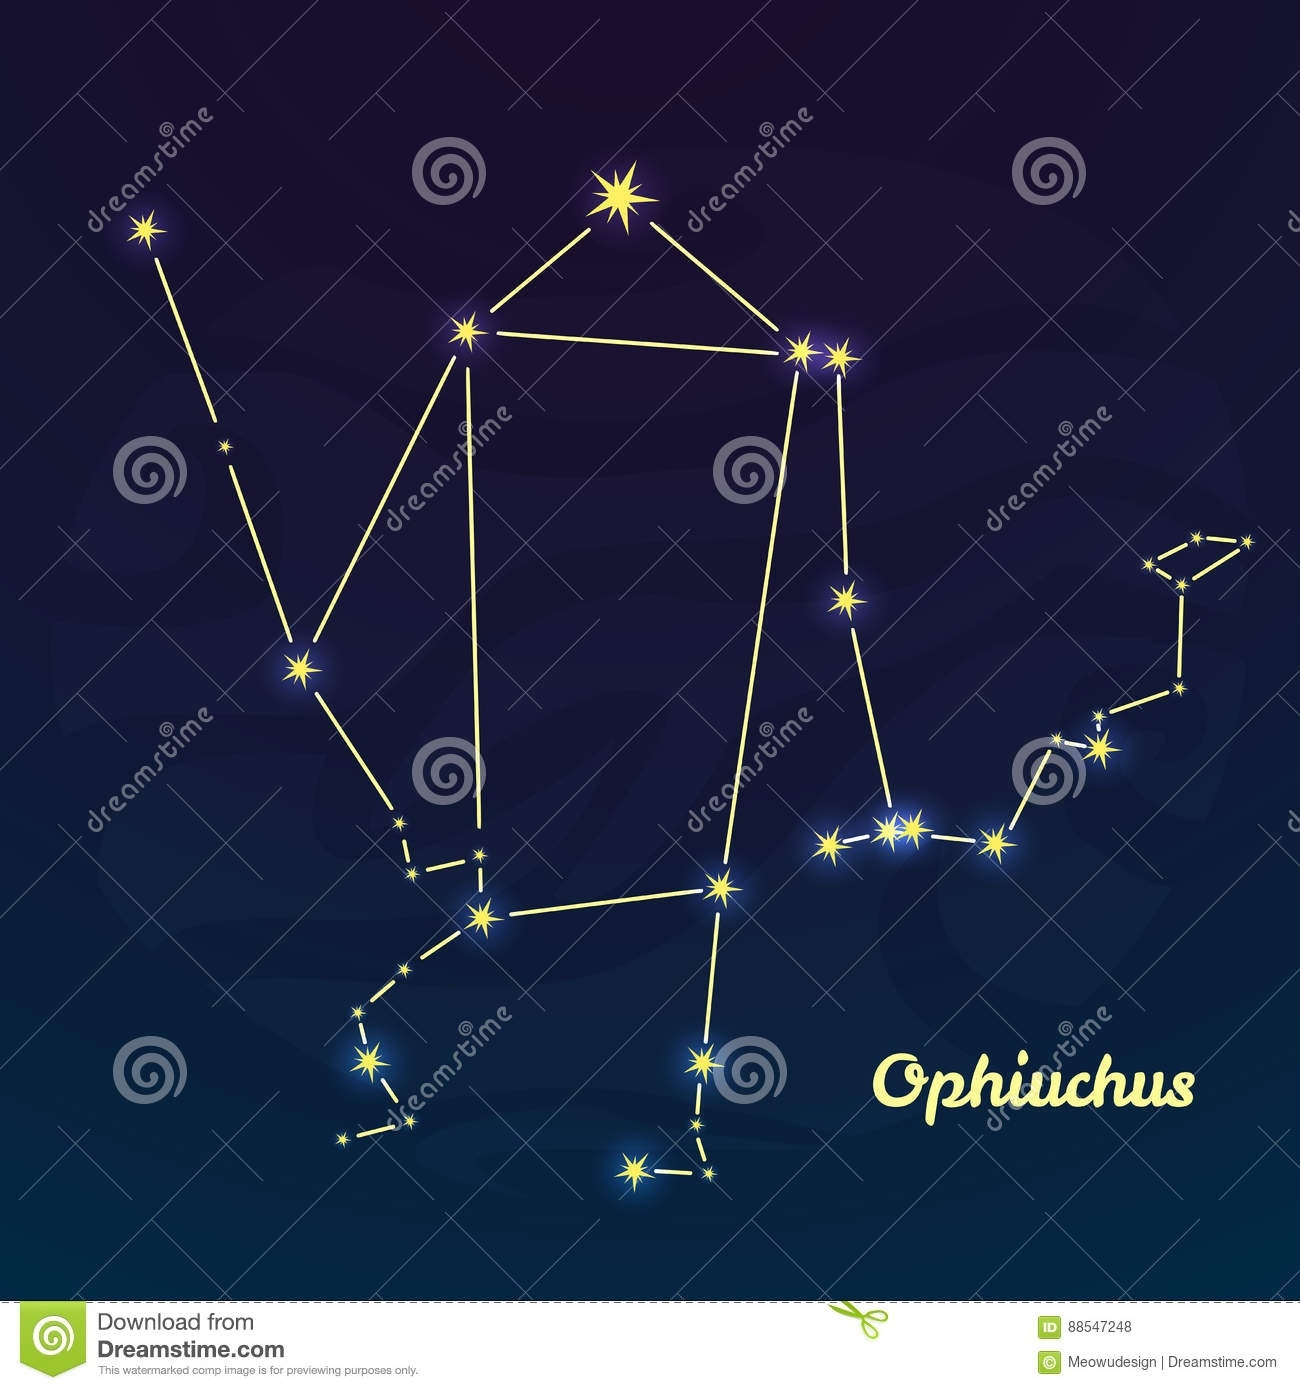 Ophiuchus Constellation Vector Illustration Stock Vector New Zodiac Calendar Ophiuchus